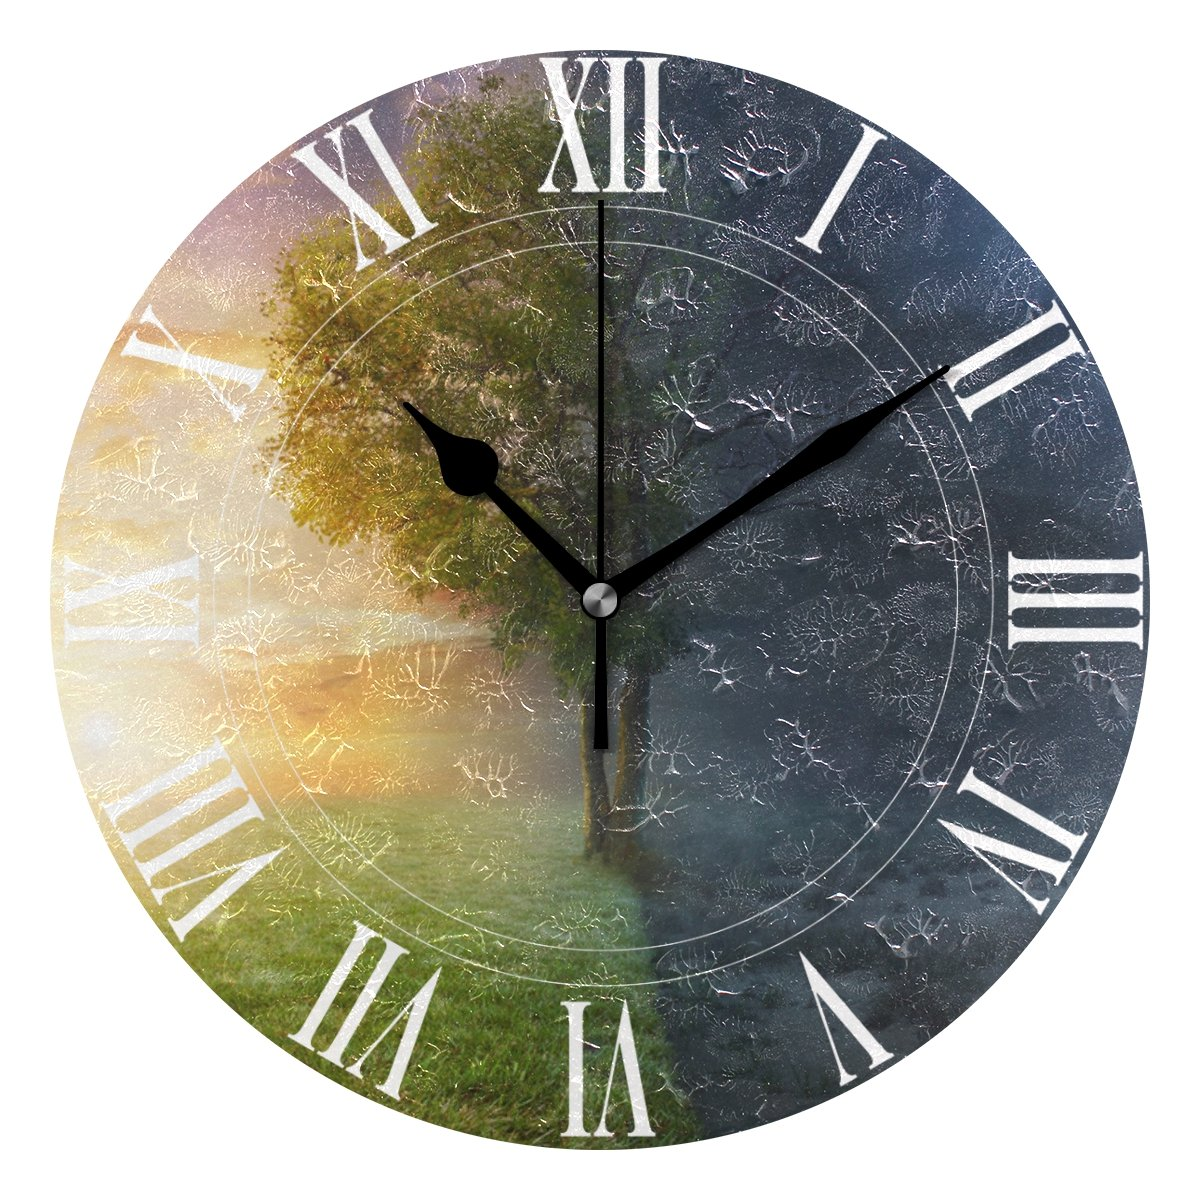 WellLee Night Day Landscape Life Tree Clock Acrylic Painted Silent Non-Ticking Round Wall Clock Home Art Bedroom Living Dorm Room Decoration by WellLee (Image #1)